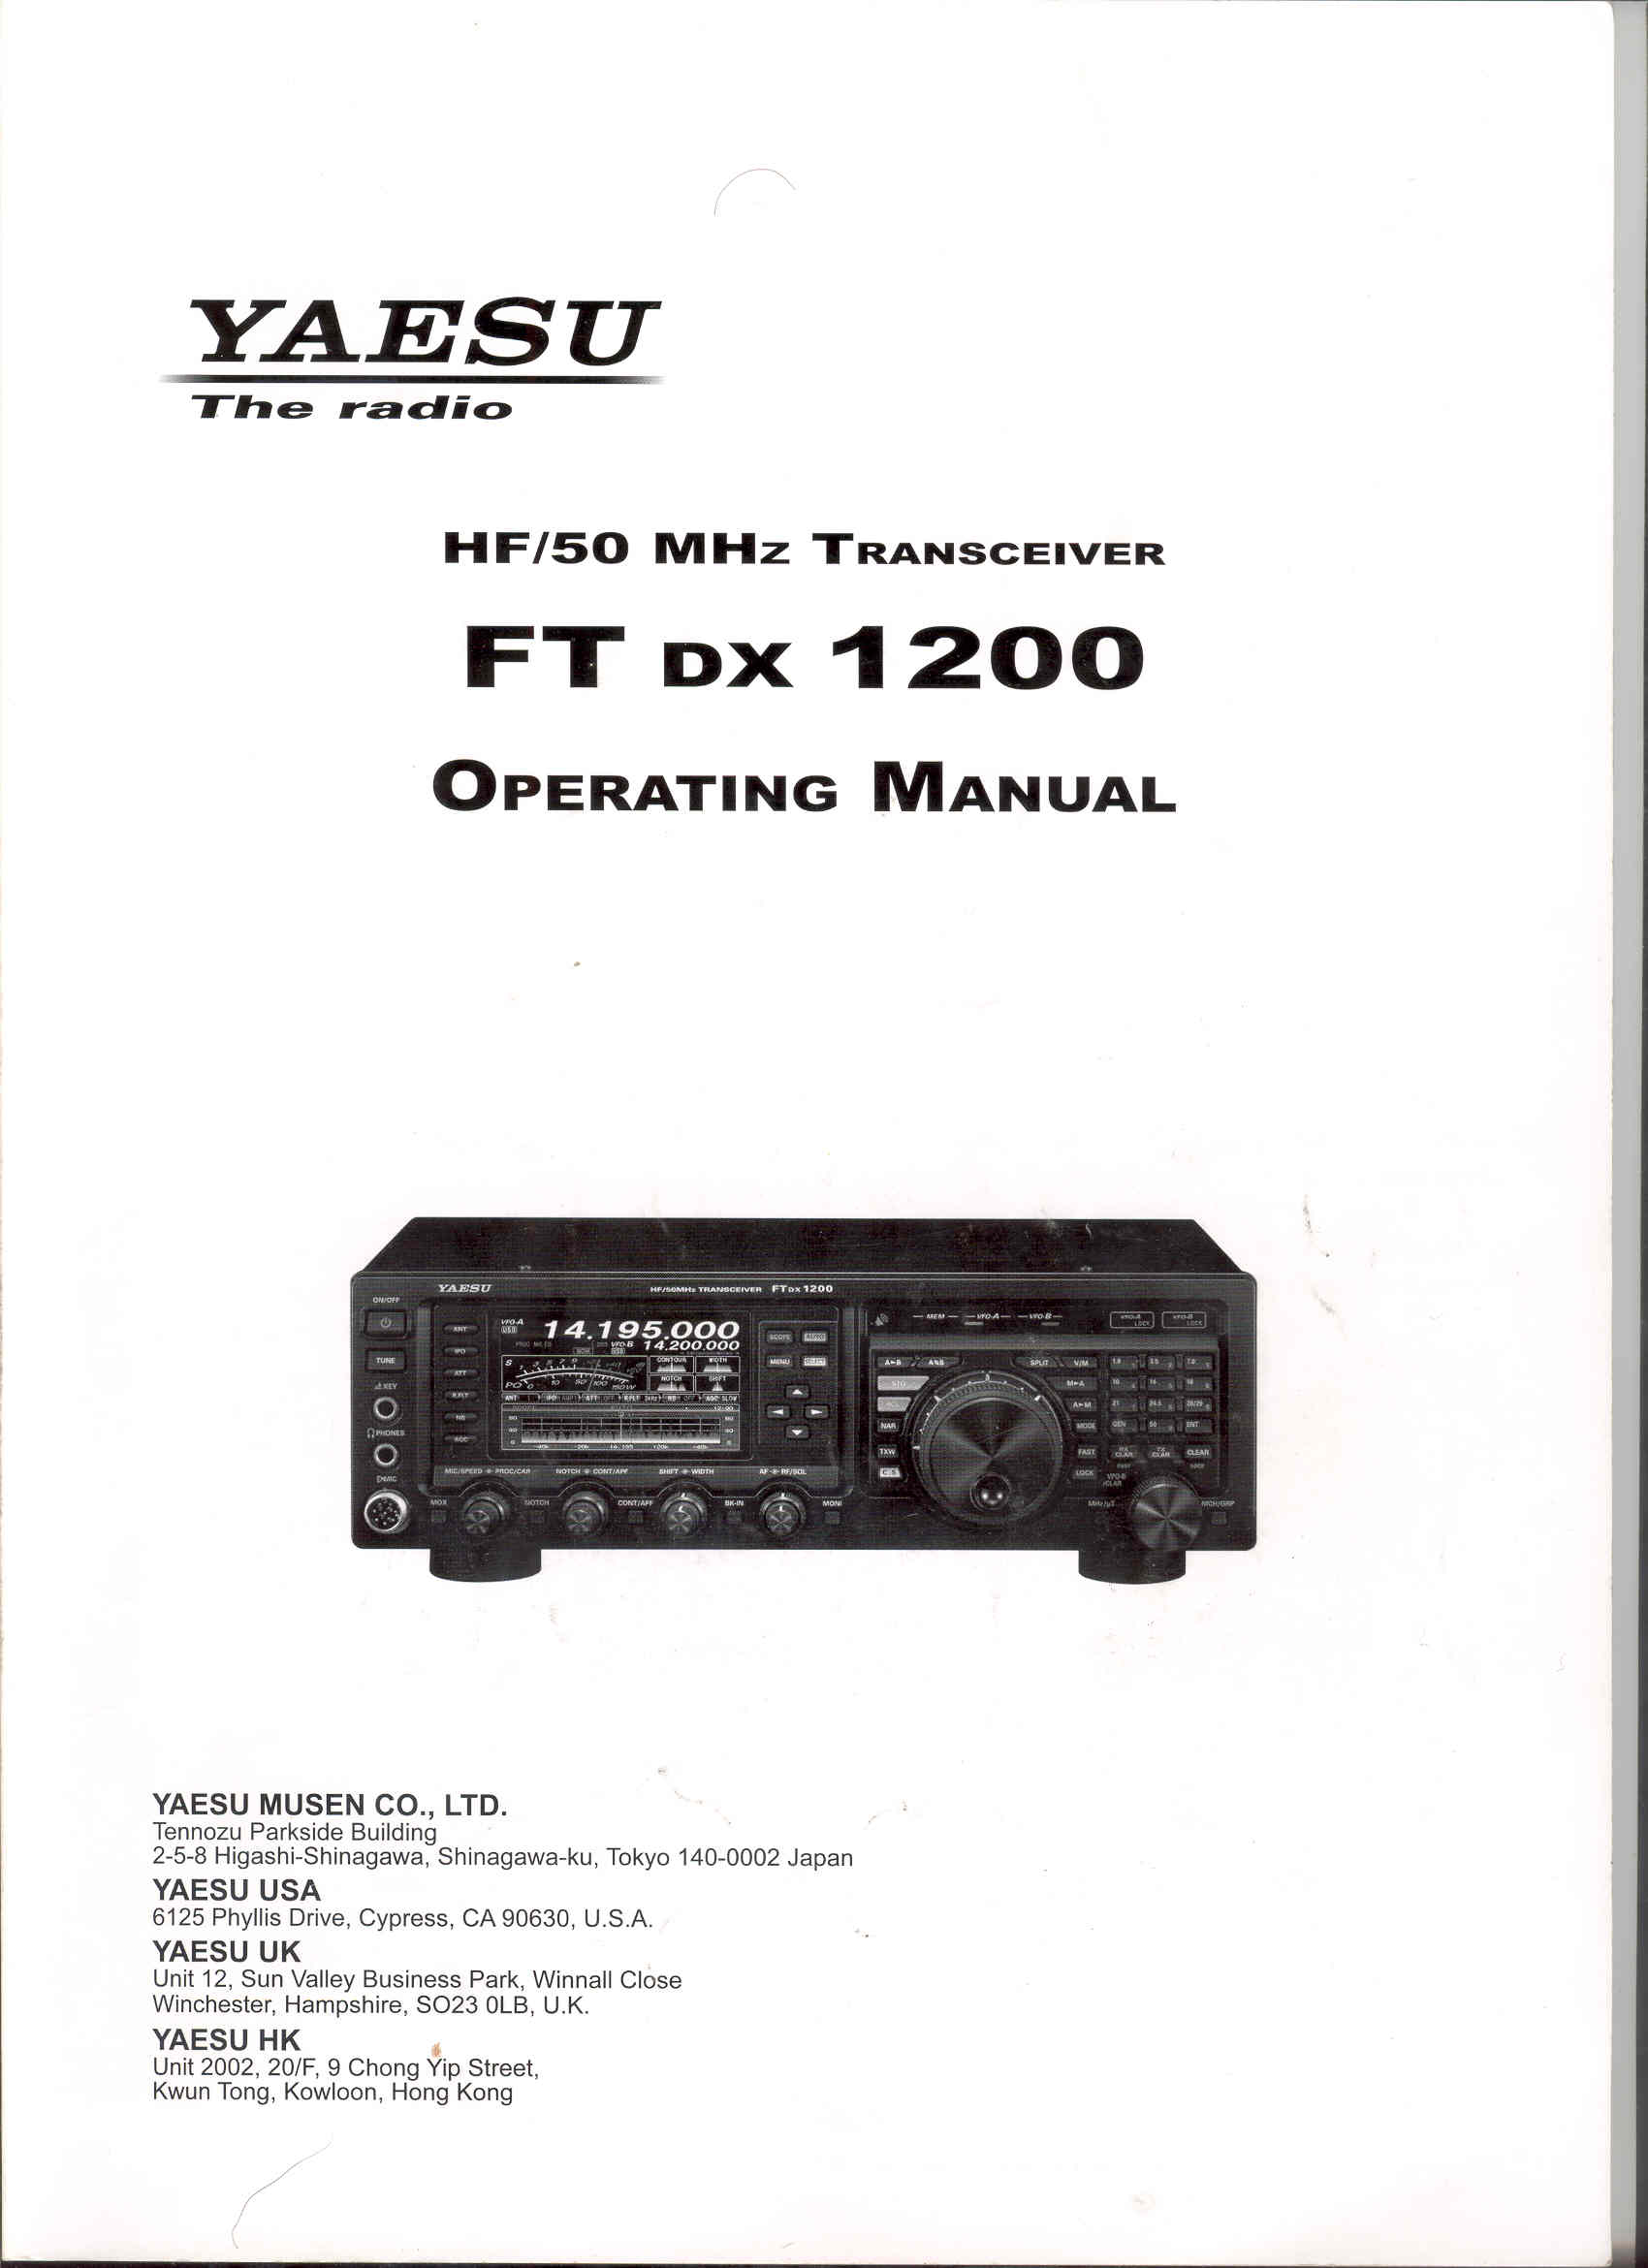 FT-DX1200 OPERATOR'S MANUAL Cover Page